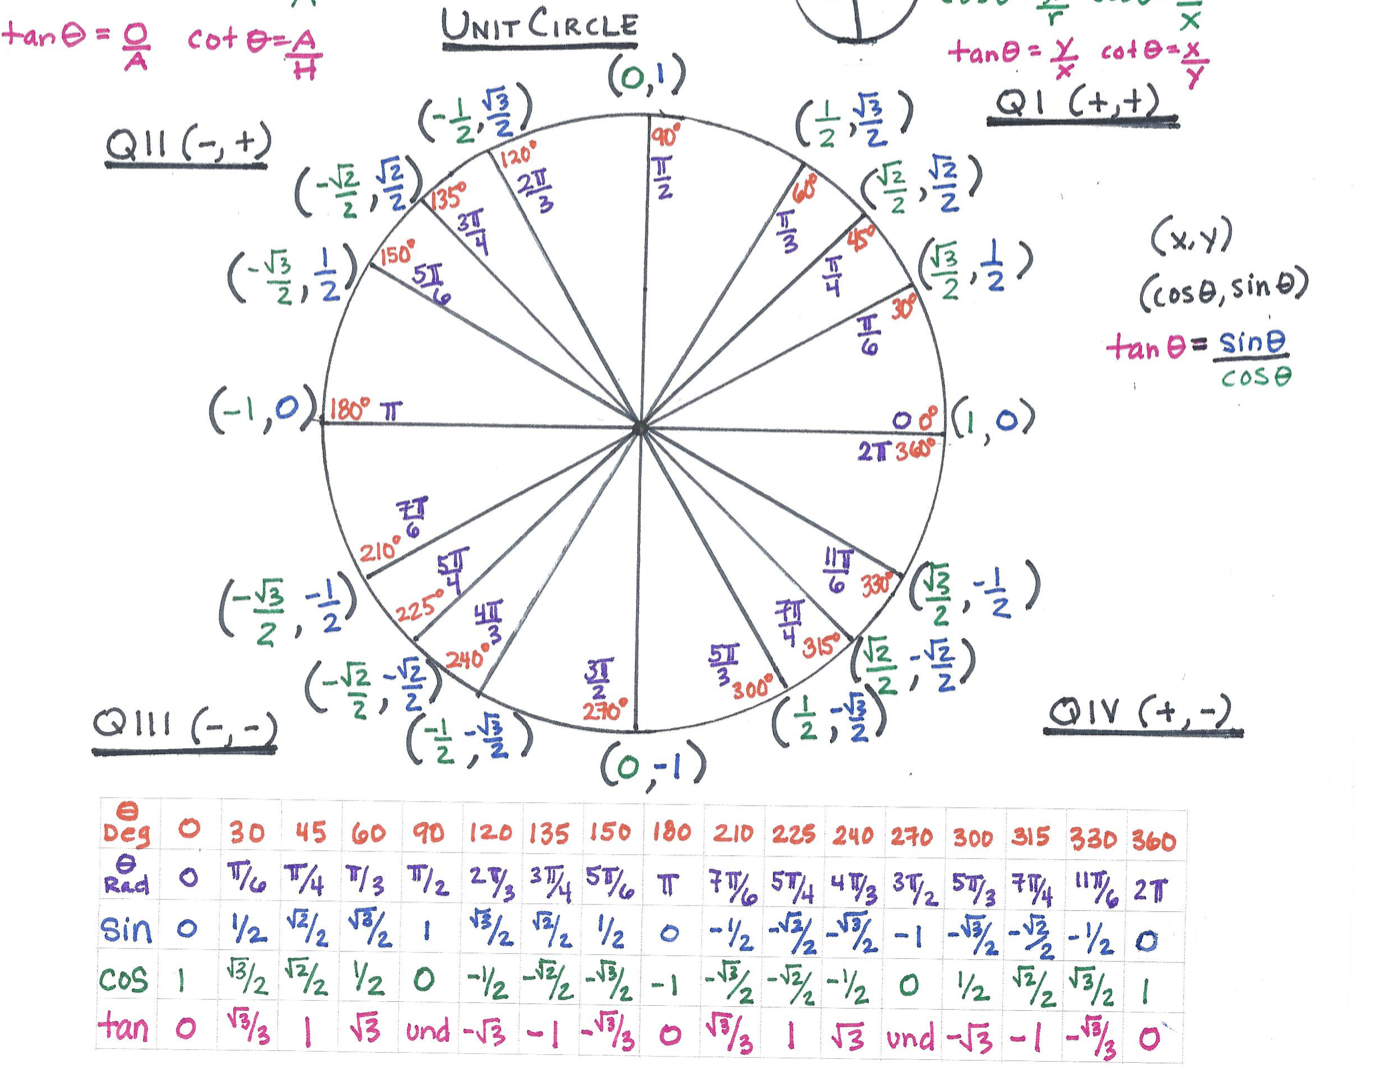 Colorful Basic Trig Cheat Sheet The Colors Help The Eye And Brain Process And Identify Quickly